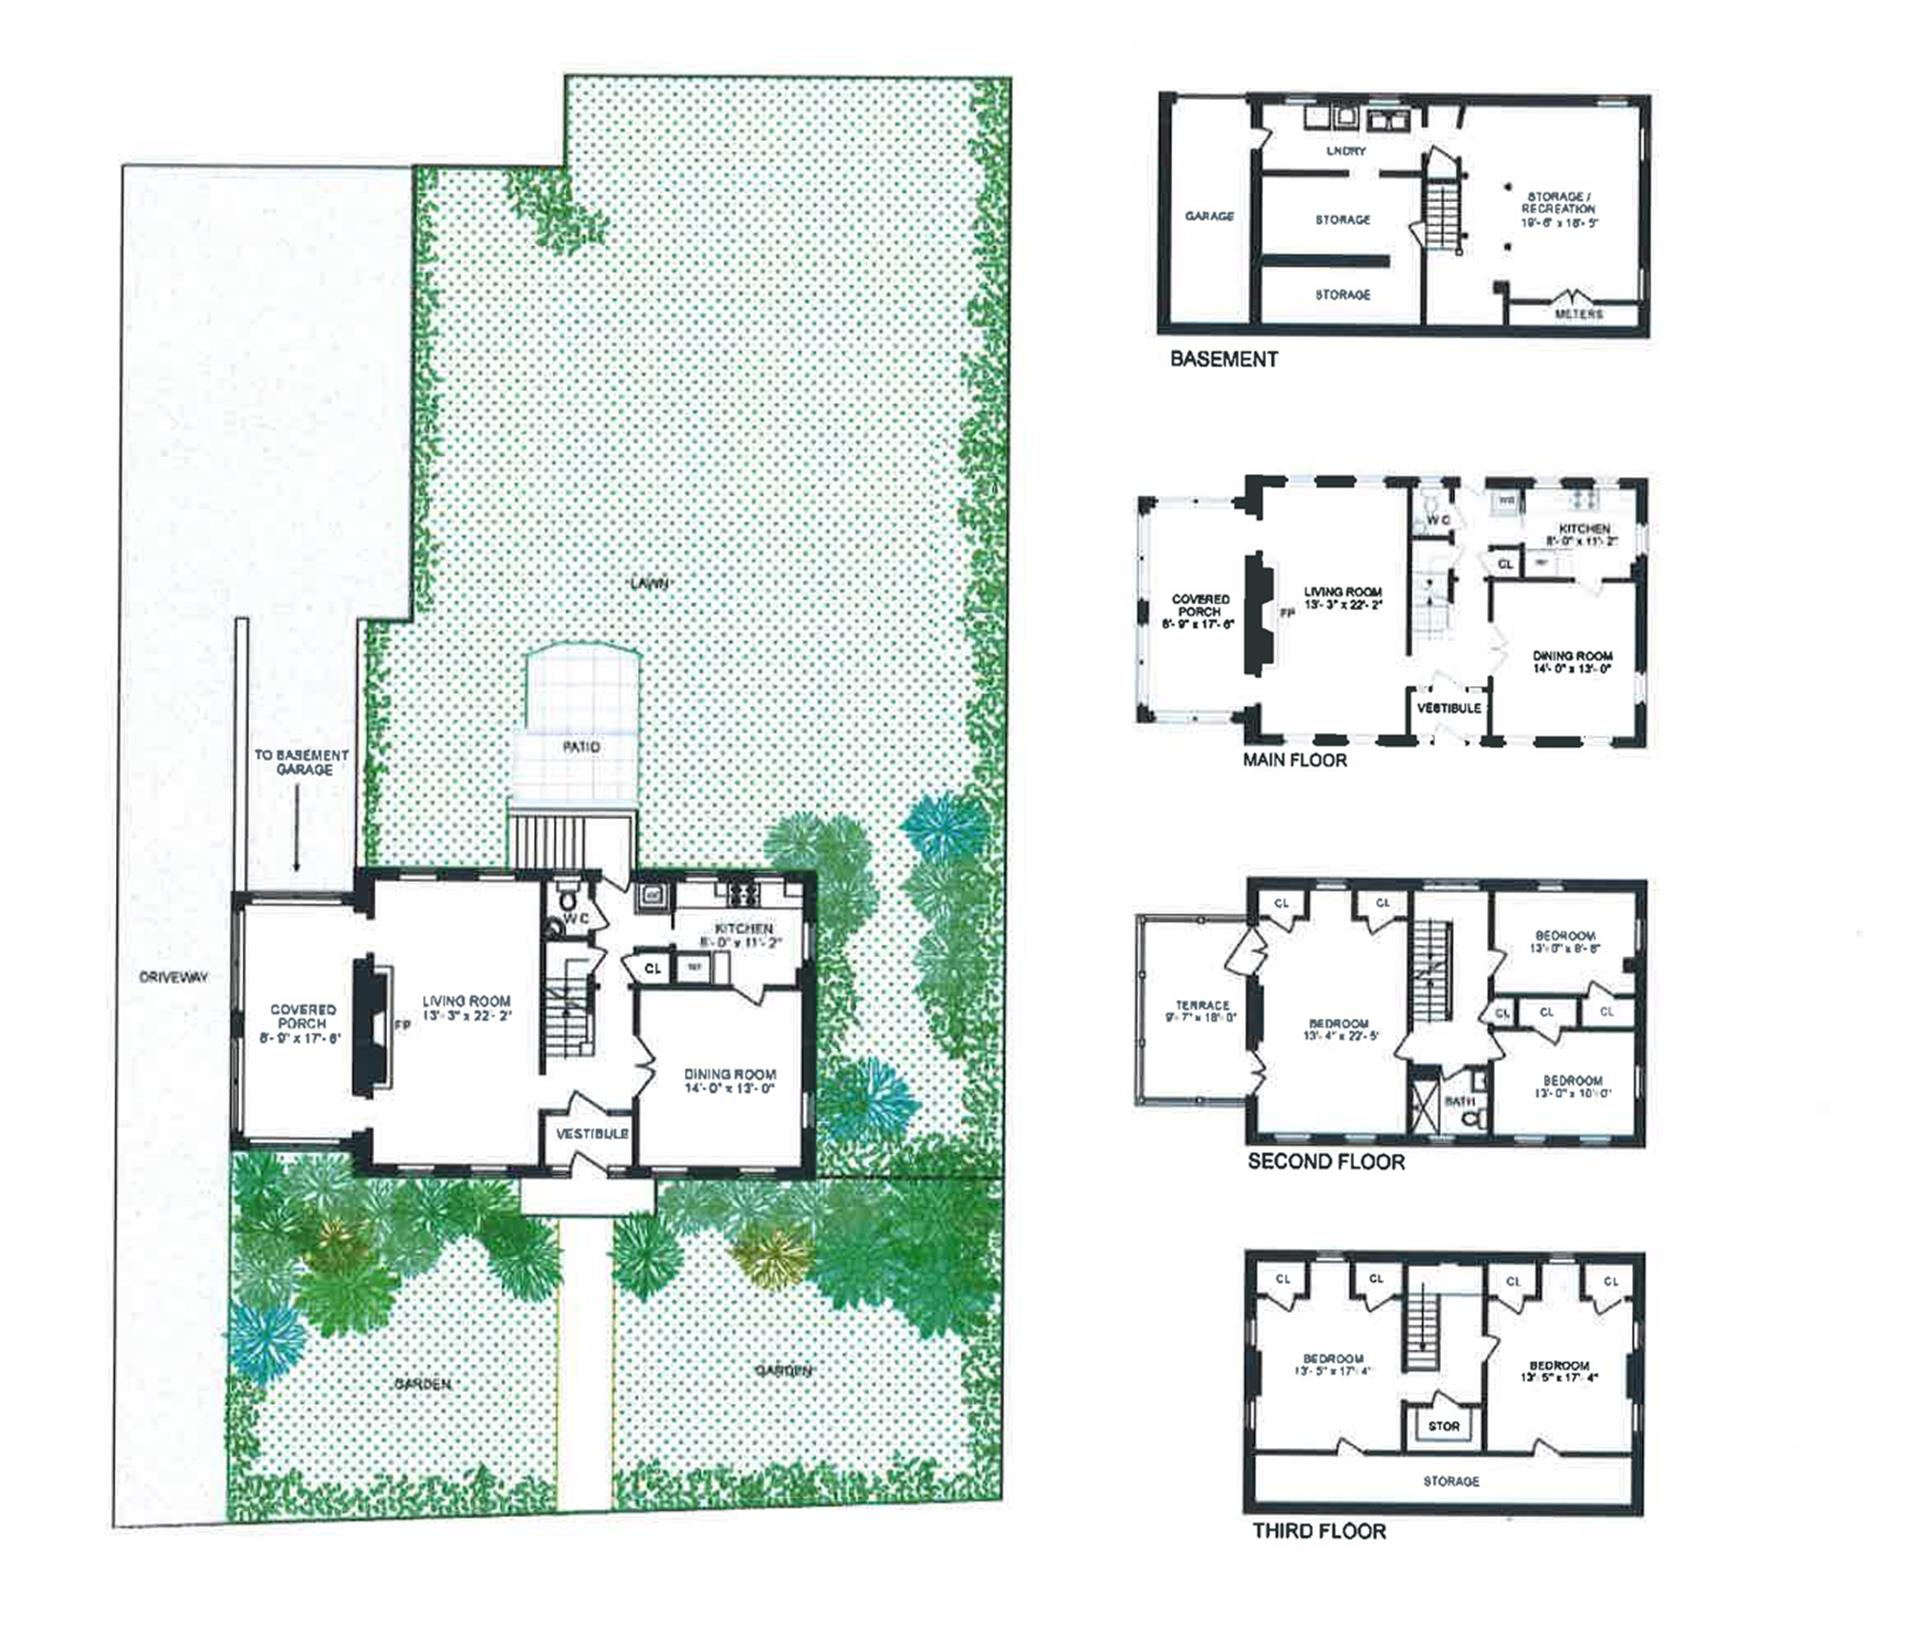 Floor plan of 4527 Delafield Avenue - Fieldston, New York